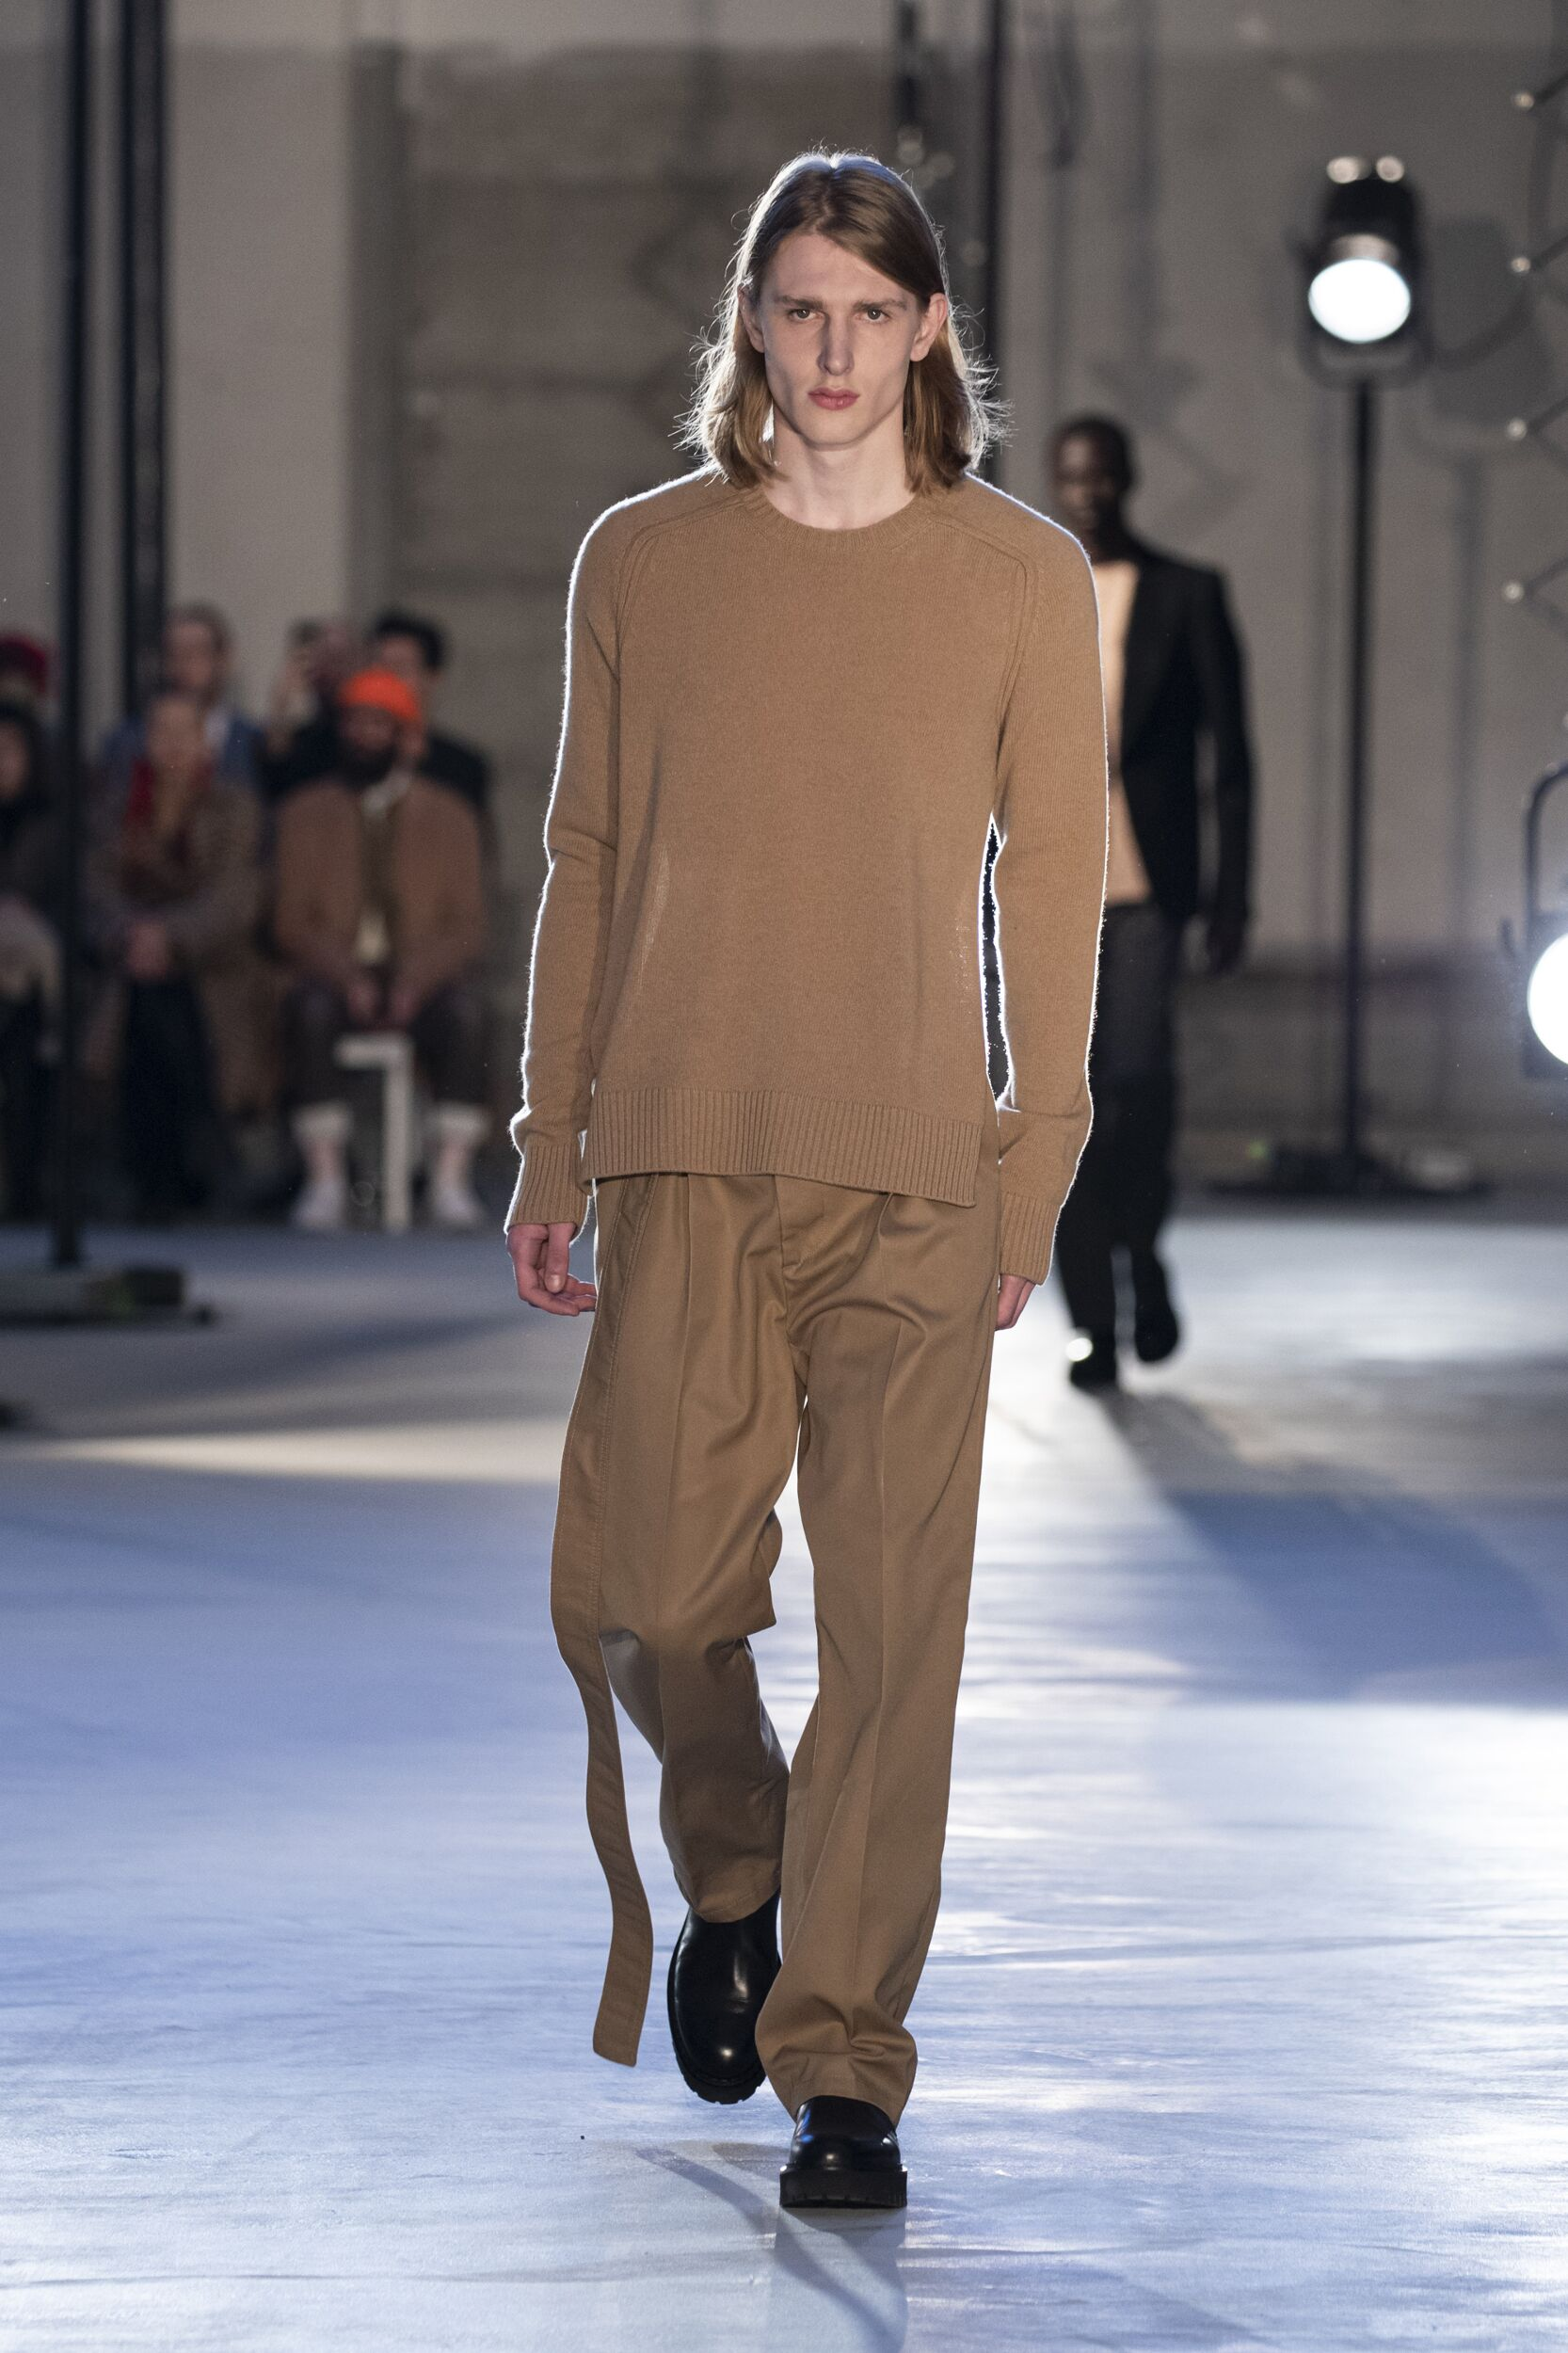 FW 2020-21 N°21 Fashion Show